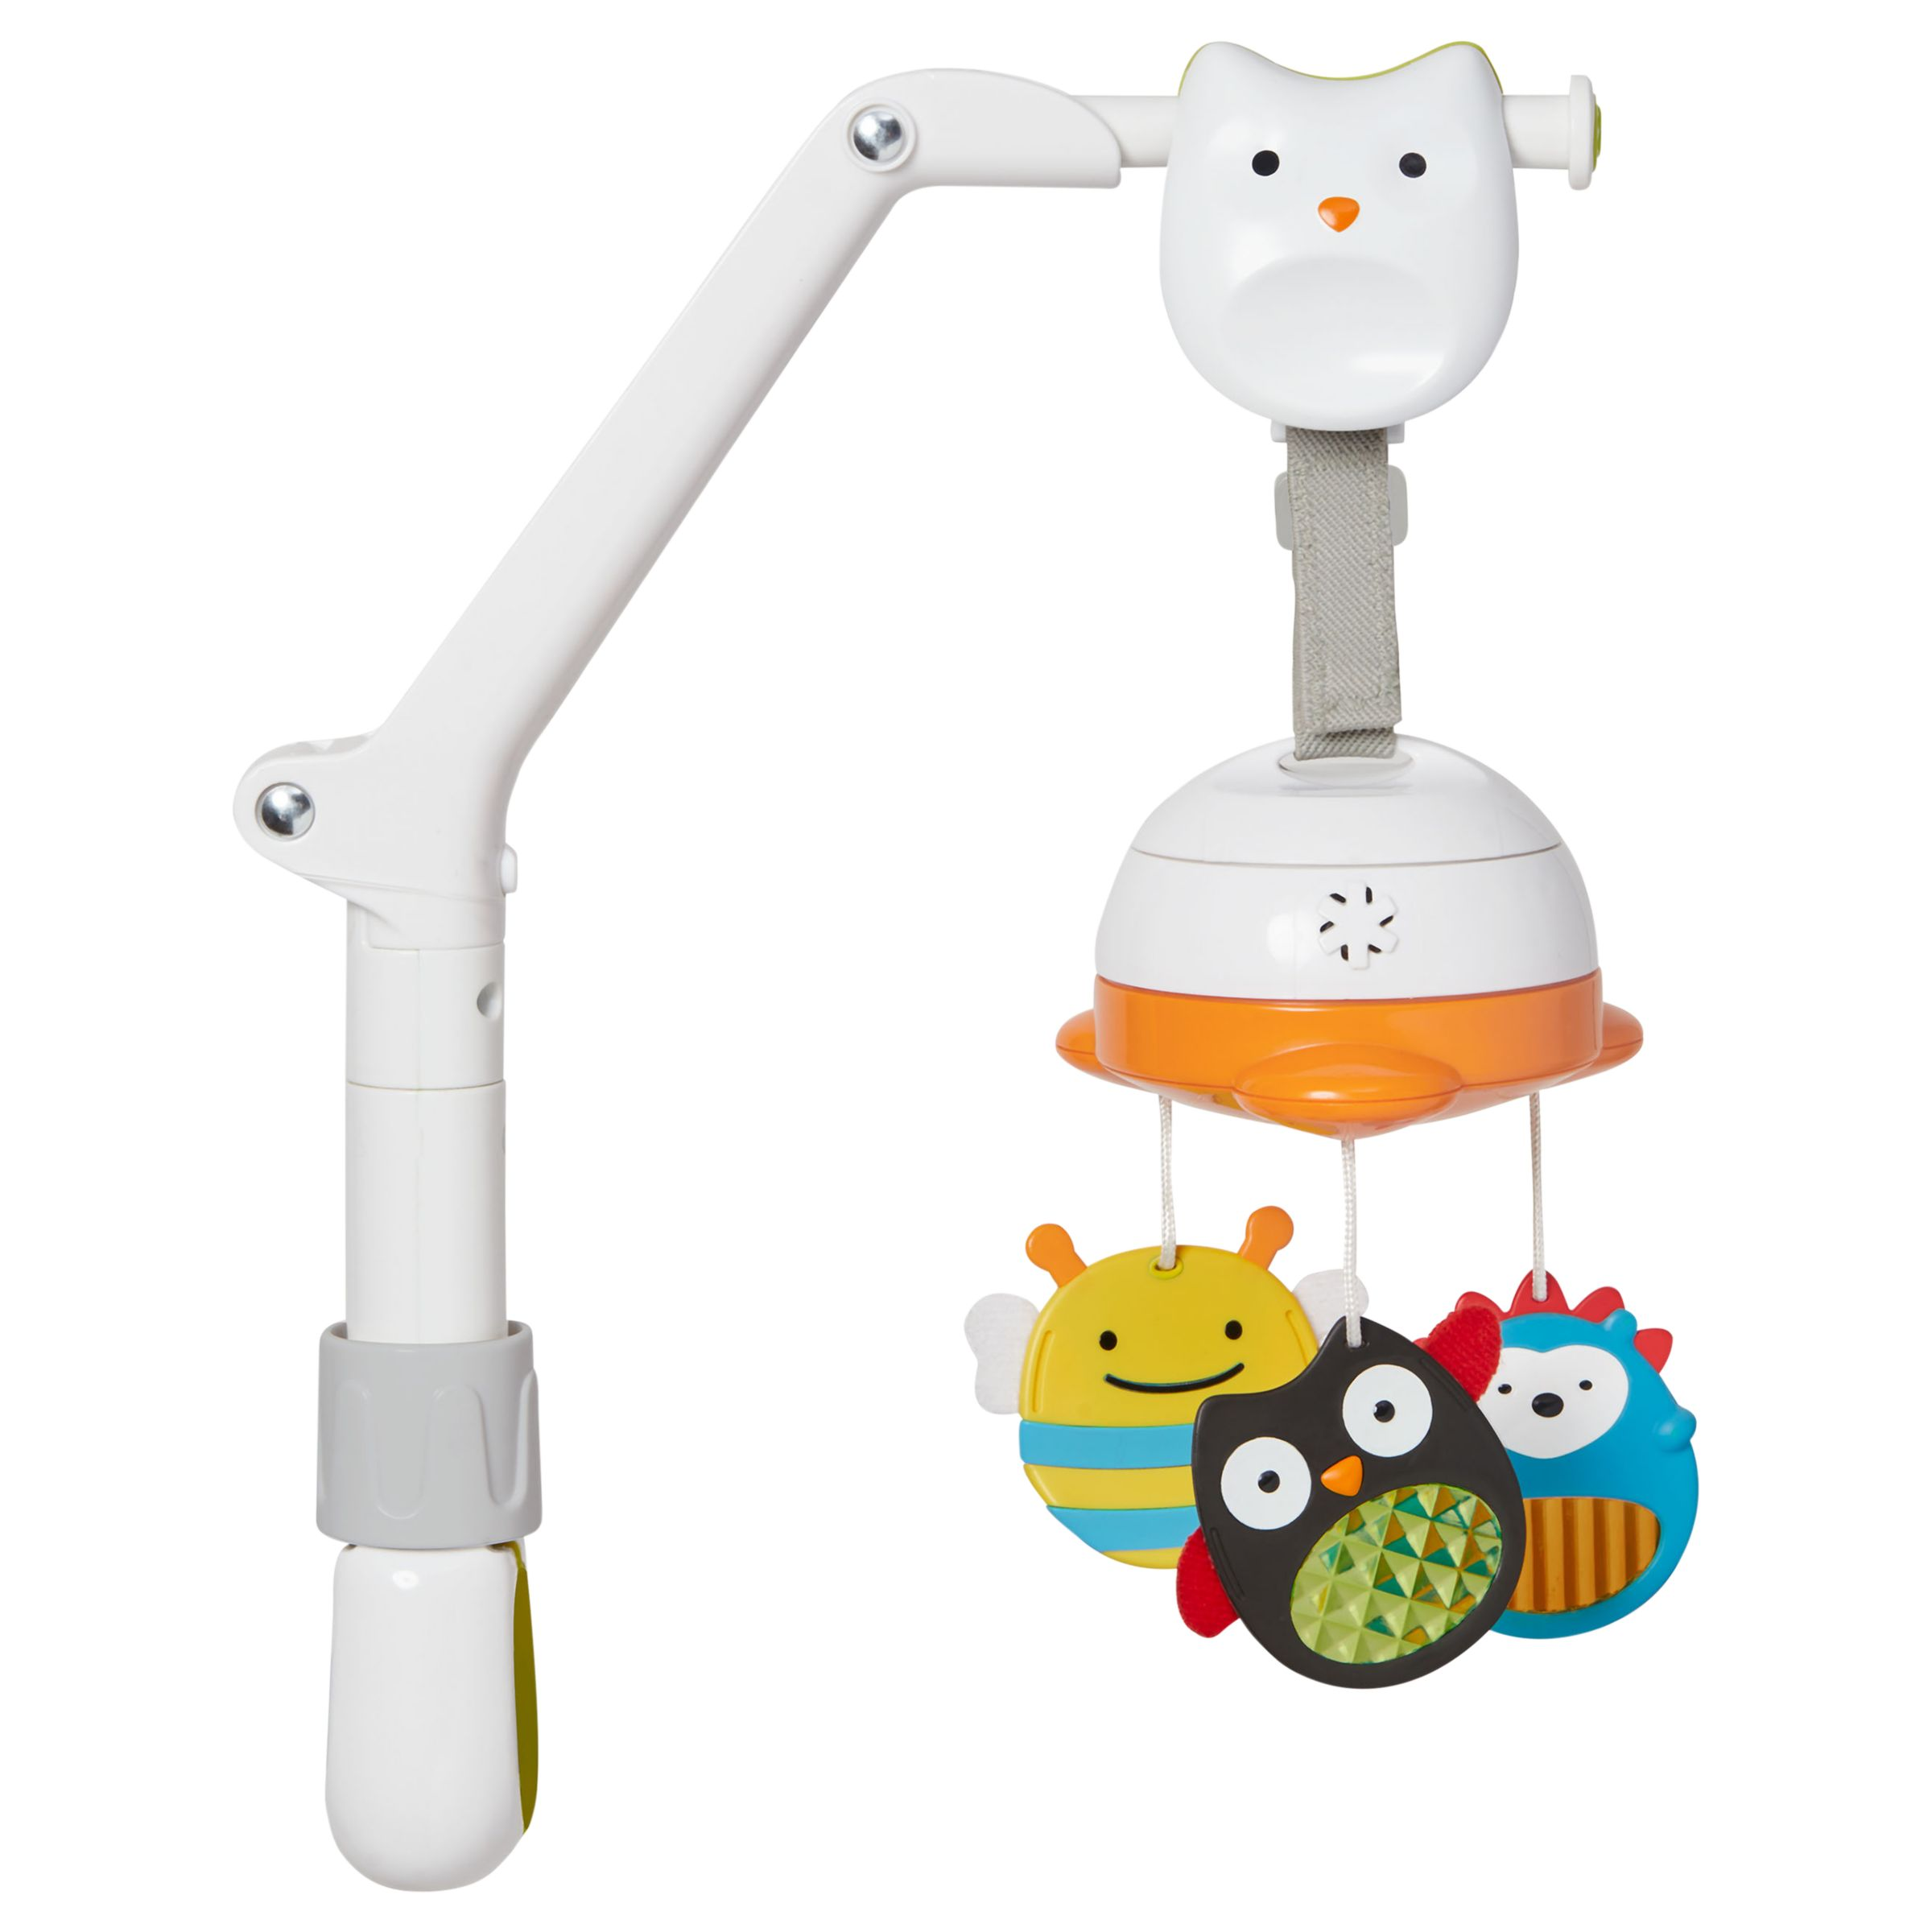 Skip Hop Skip Hop Explore and More 3-in-1 Travel Mobile